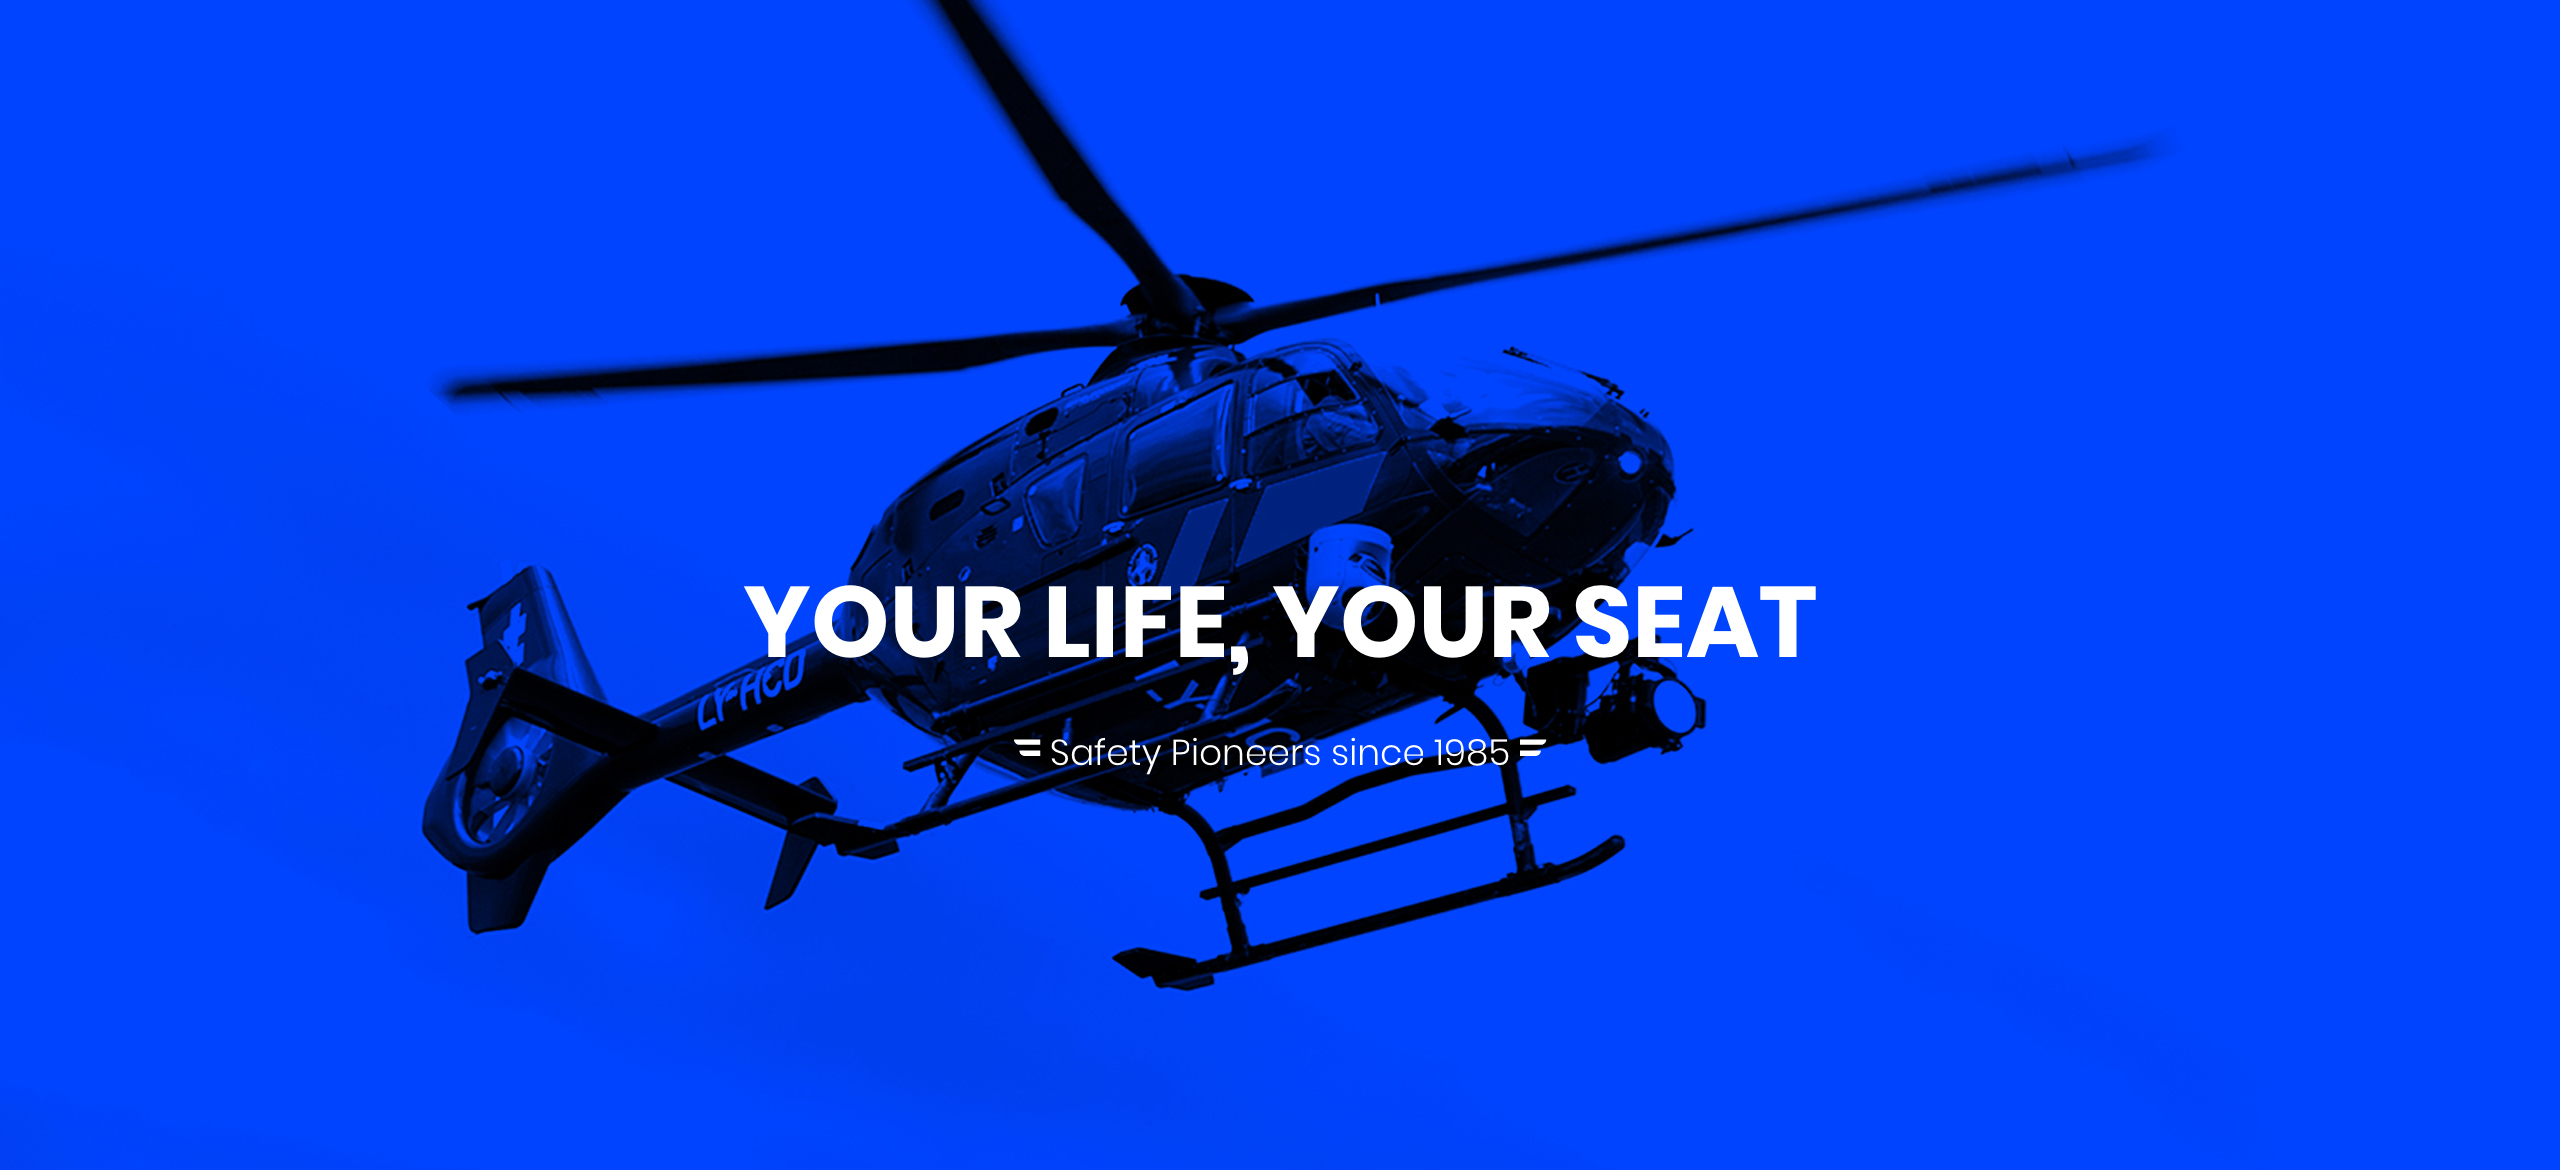 YOUR LIFE, YOUR SEAT